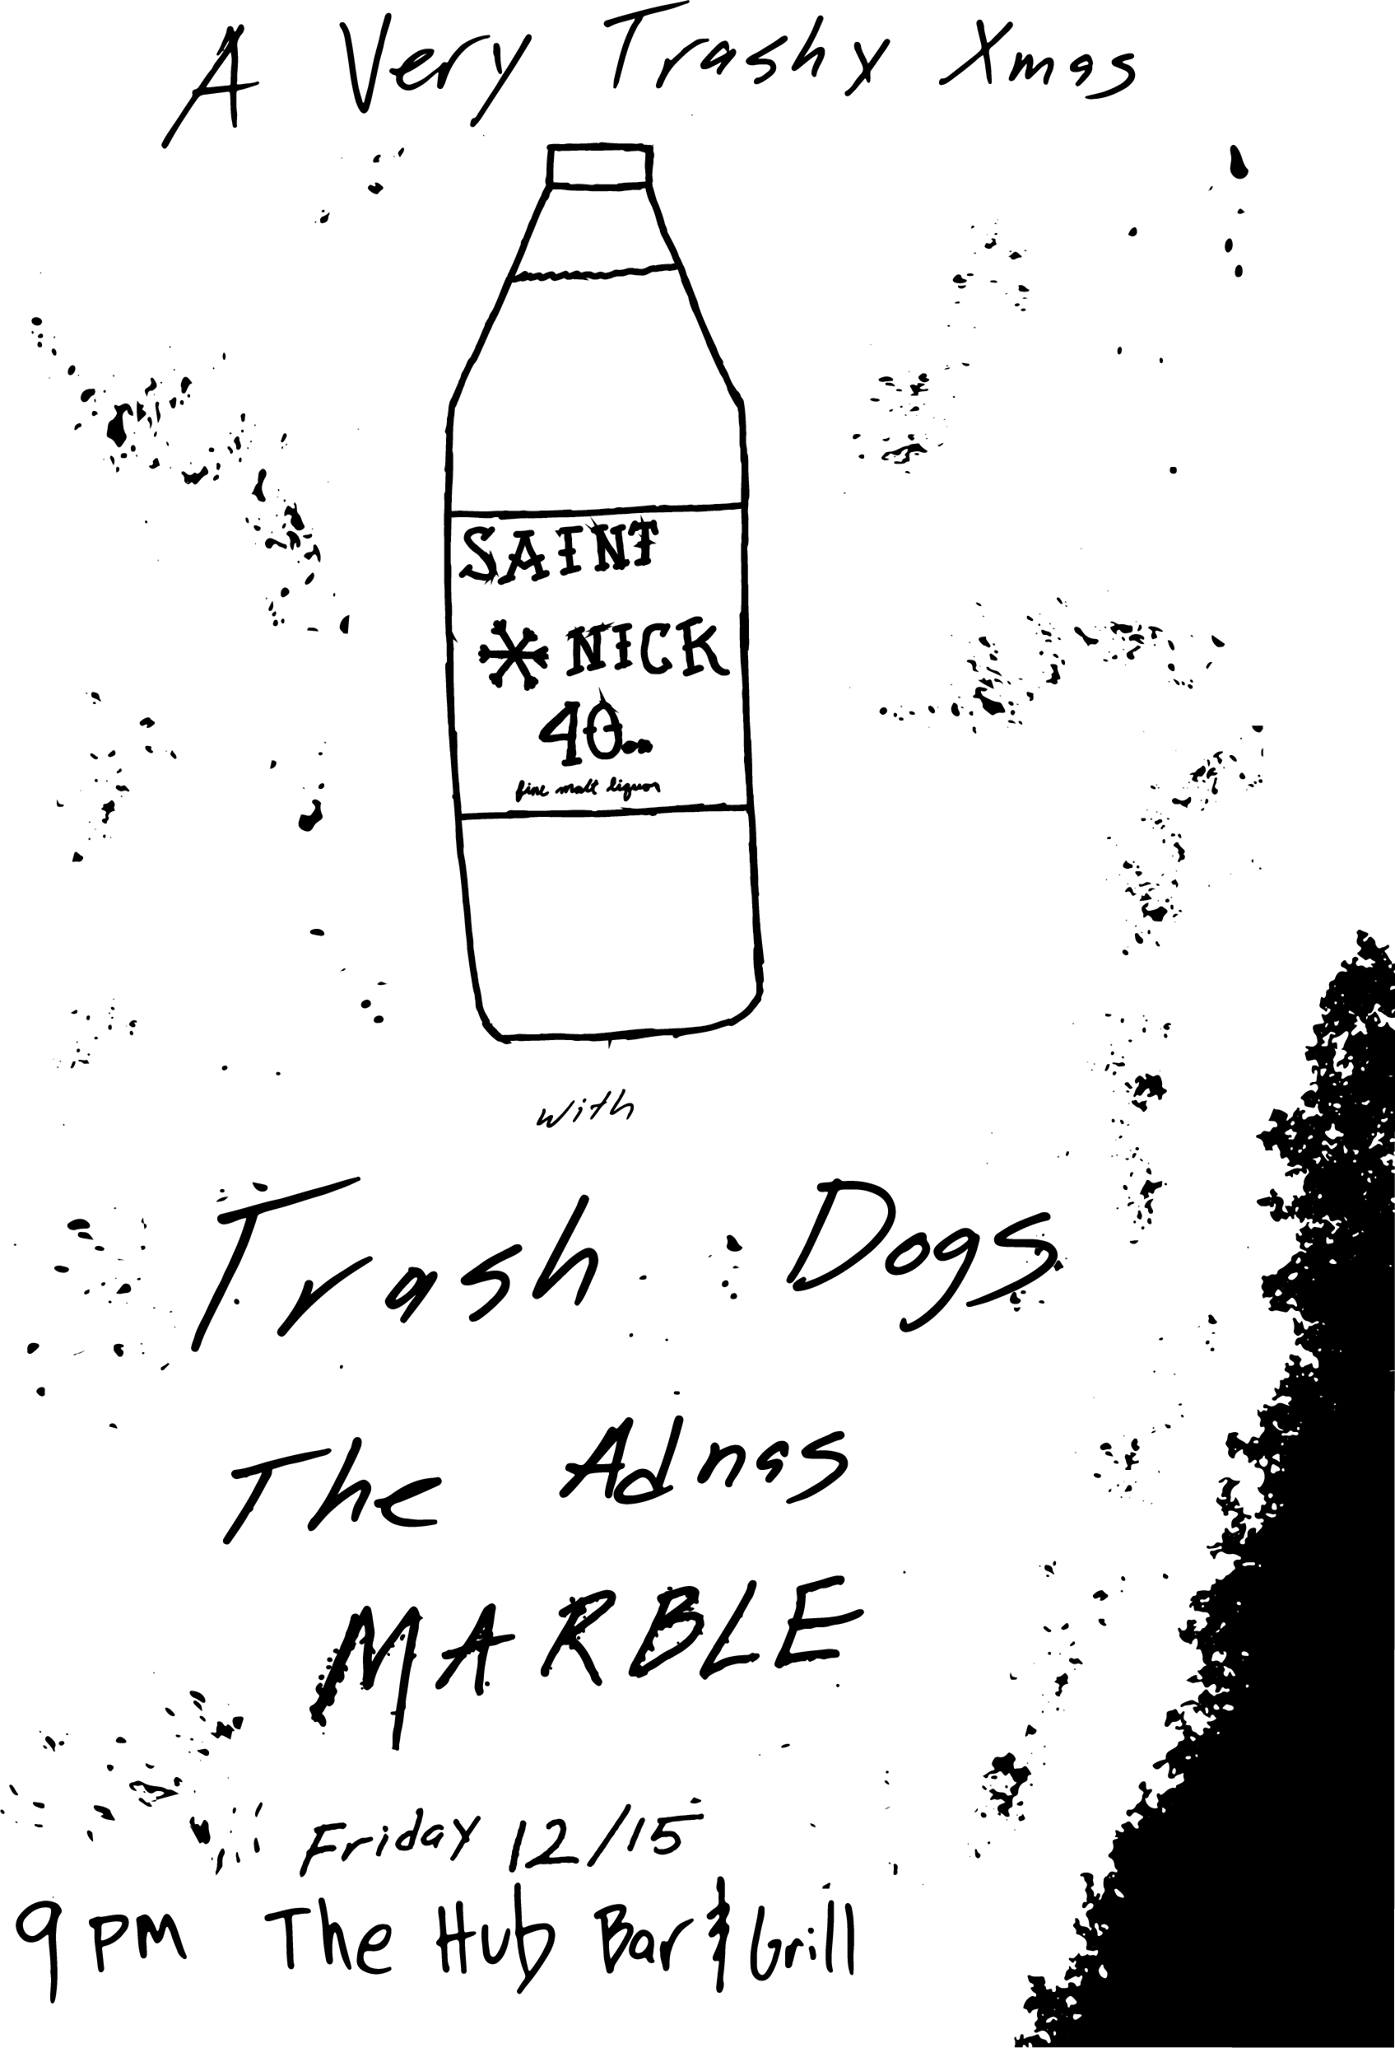 Poster by Trash Dogs